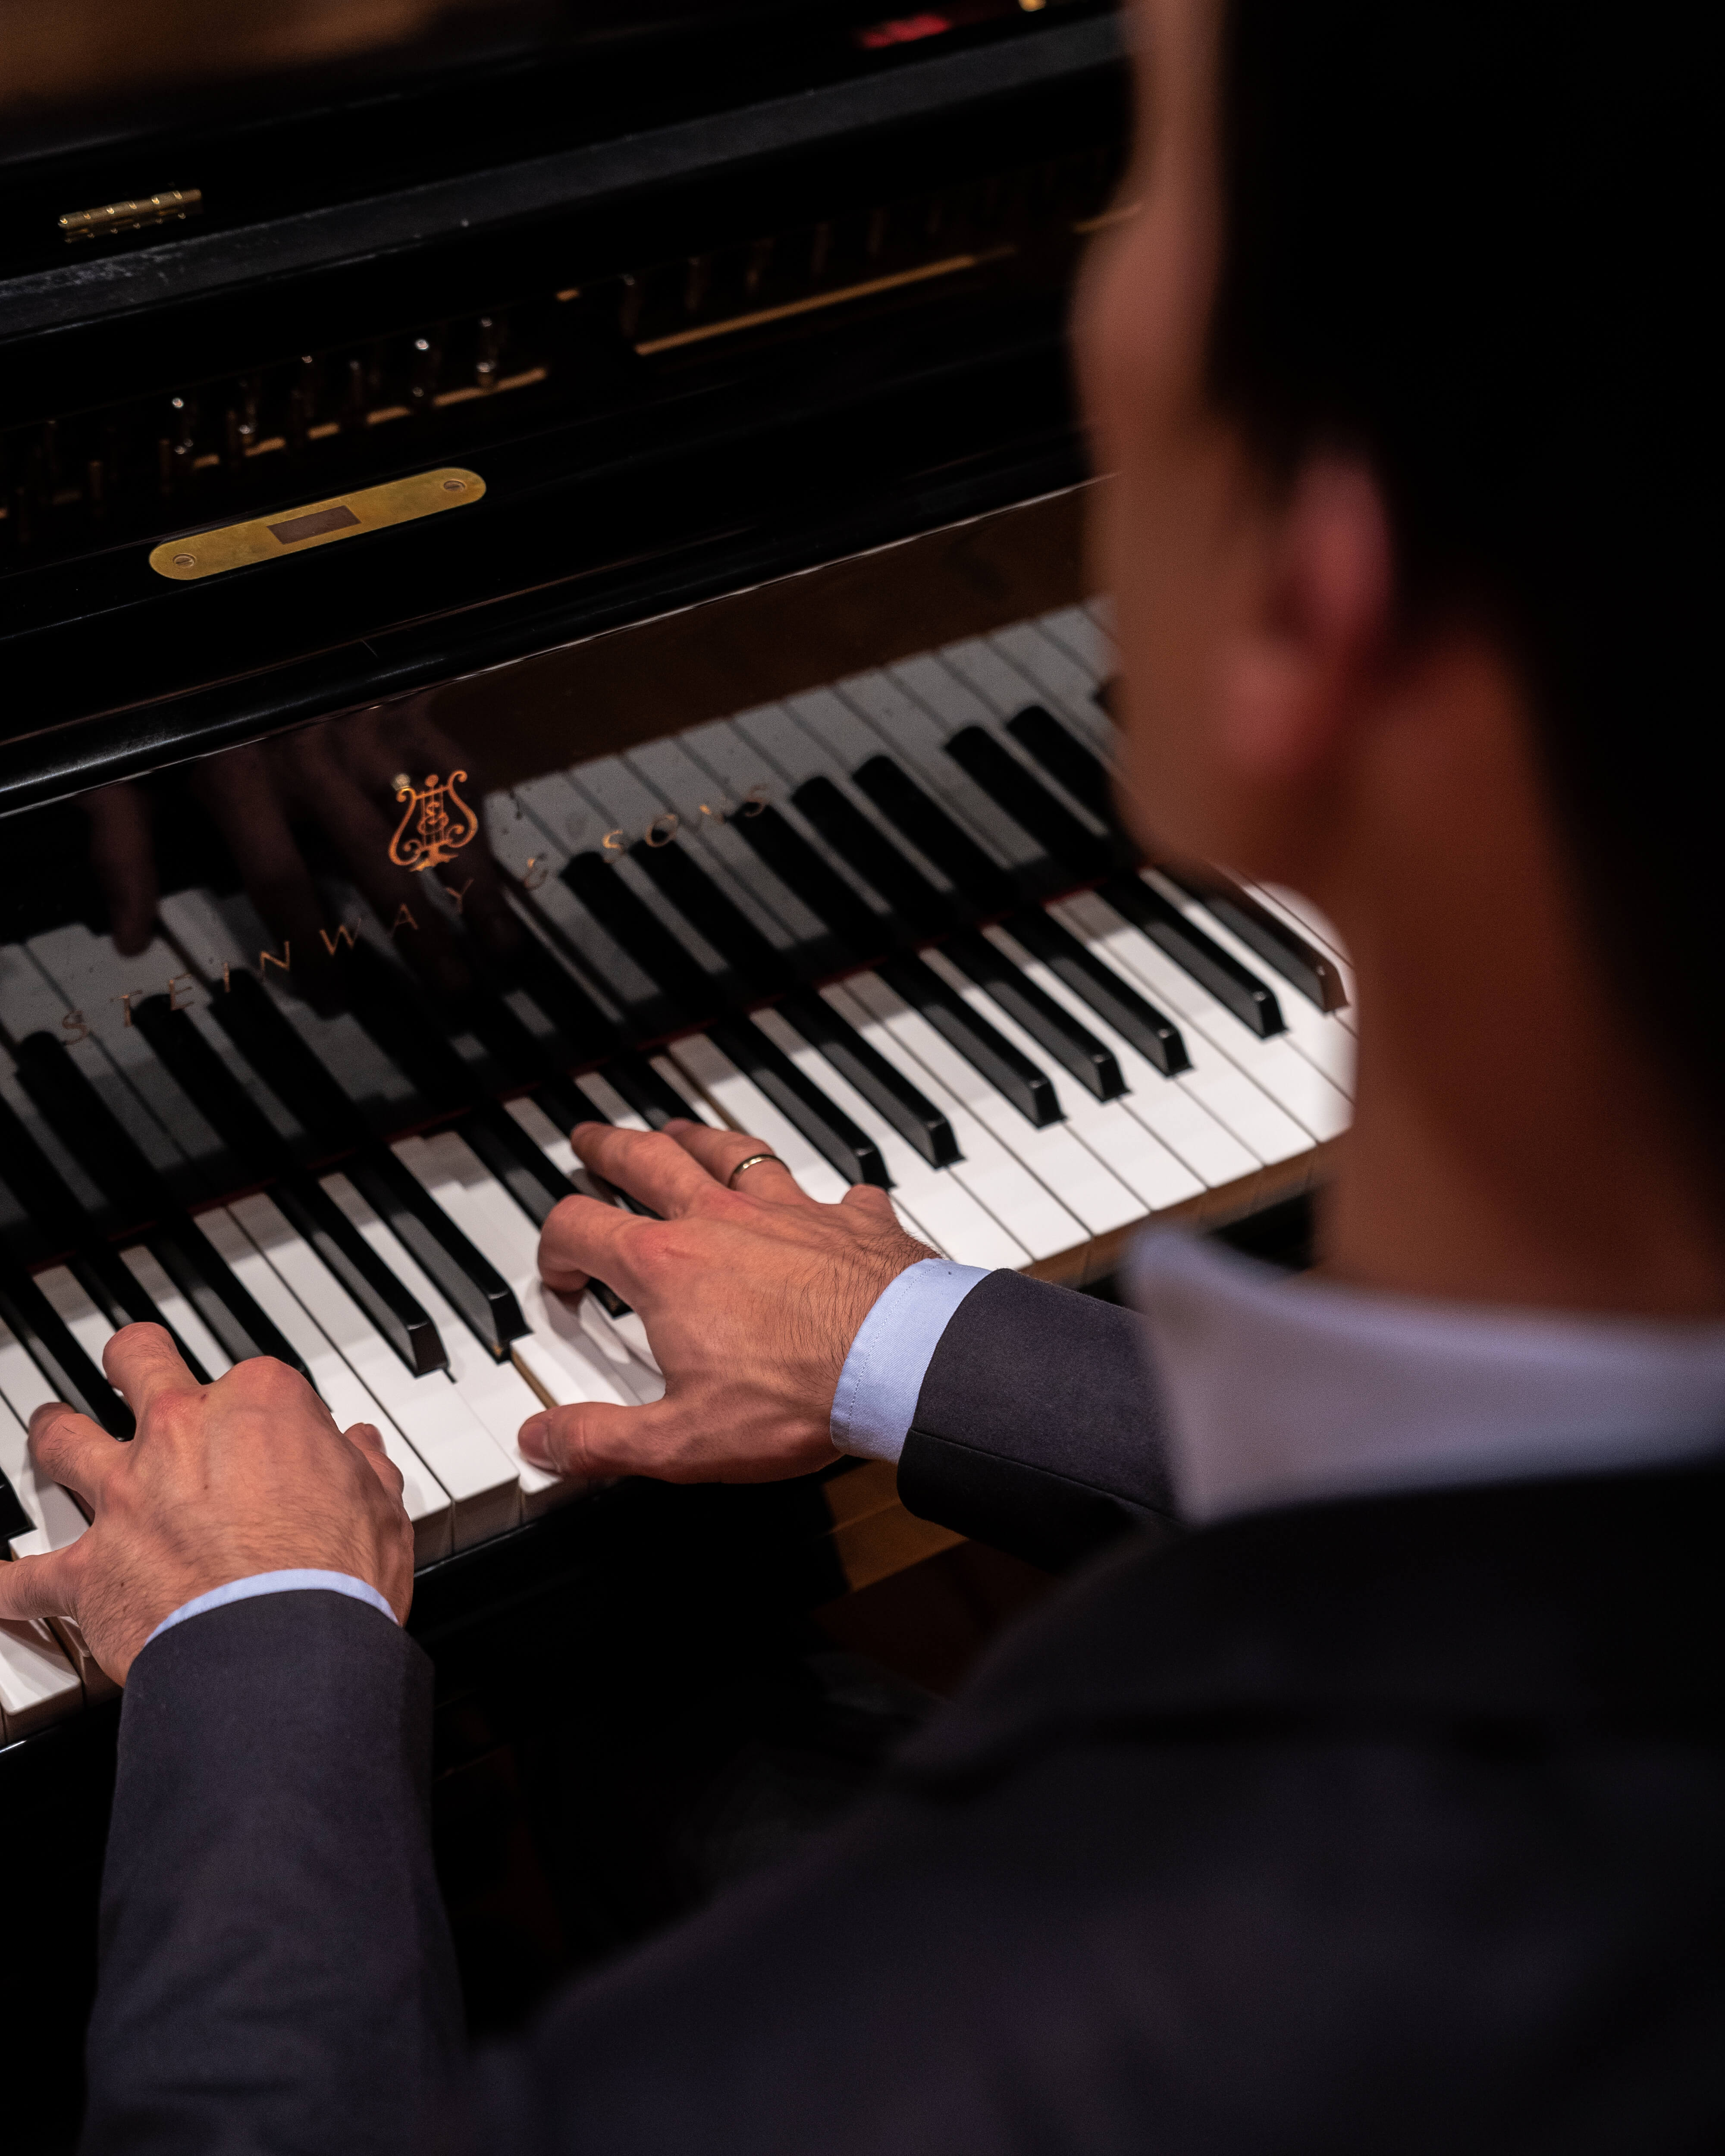 An over the shoulder photo of a pianist playing a Steinway and Sons grand piano.